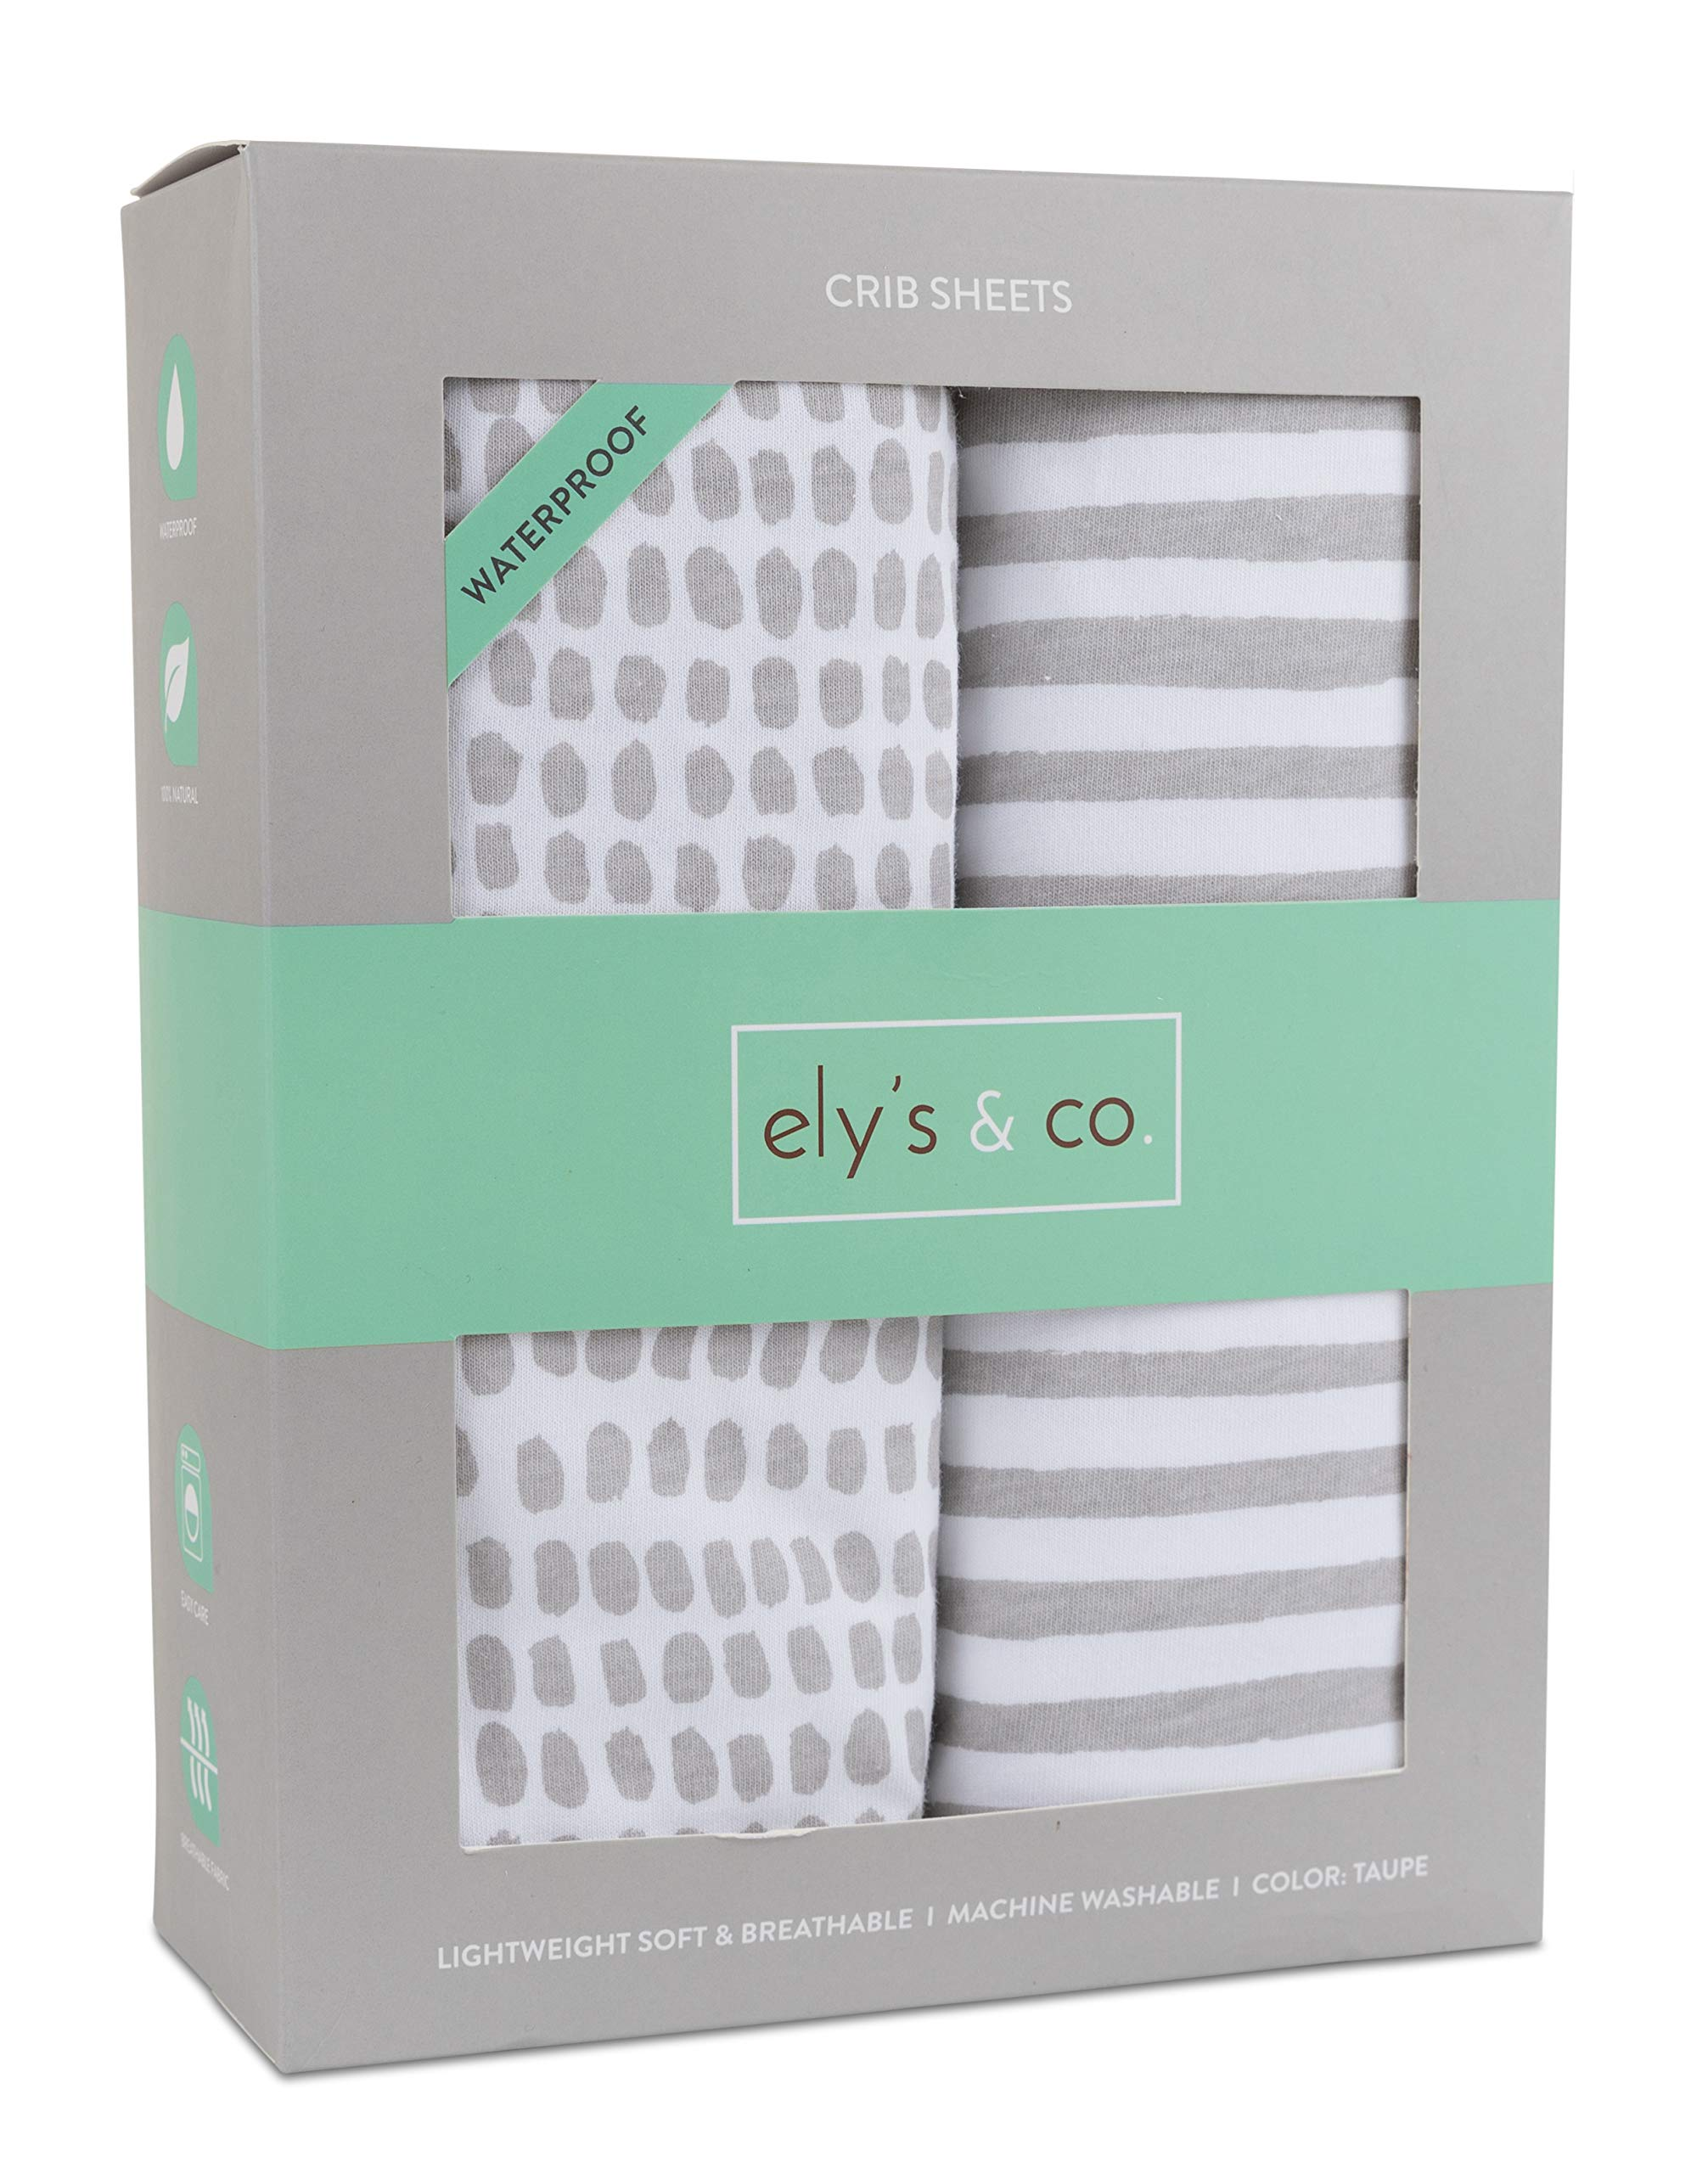 Waterproof Crib Sheet | Toddler Sheet no Need for Crib Mattress Pad Cover or Protector I Taupe Splash and Stripes by Ely's & Co. by Ely's & Co.